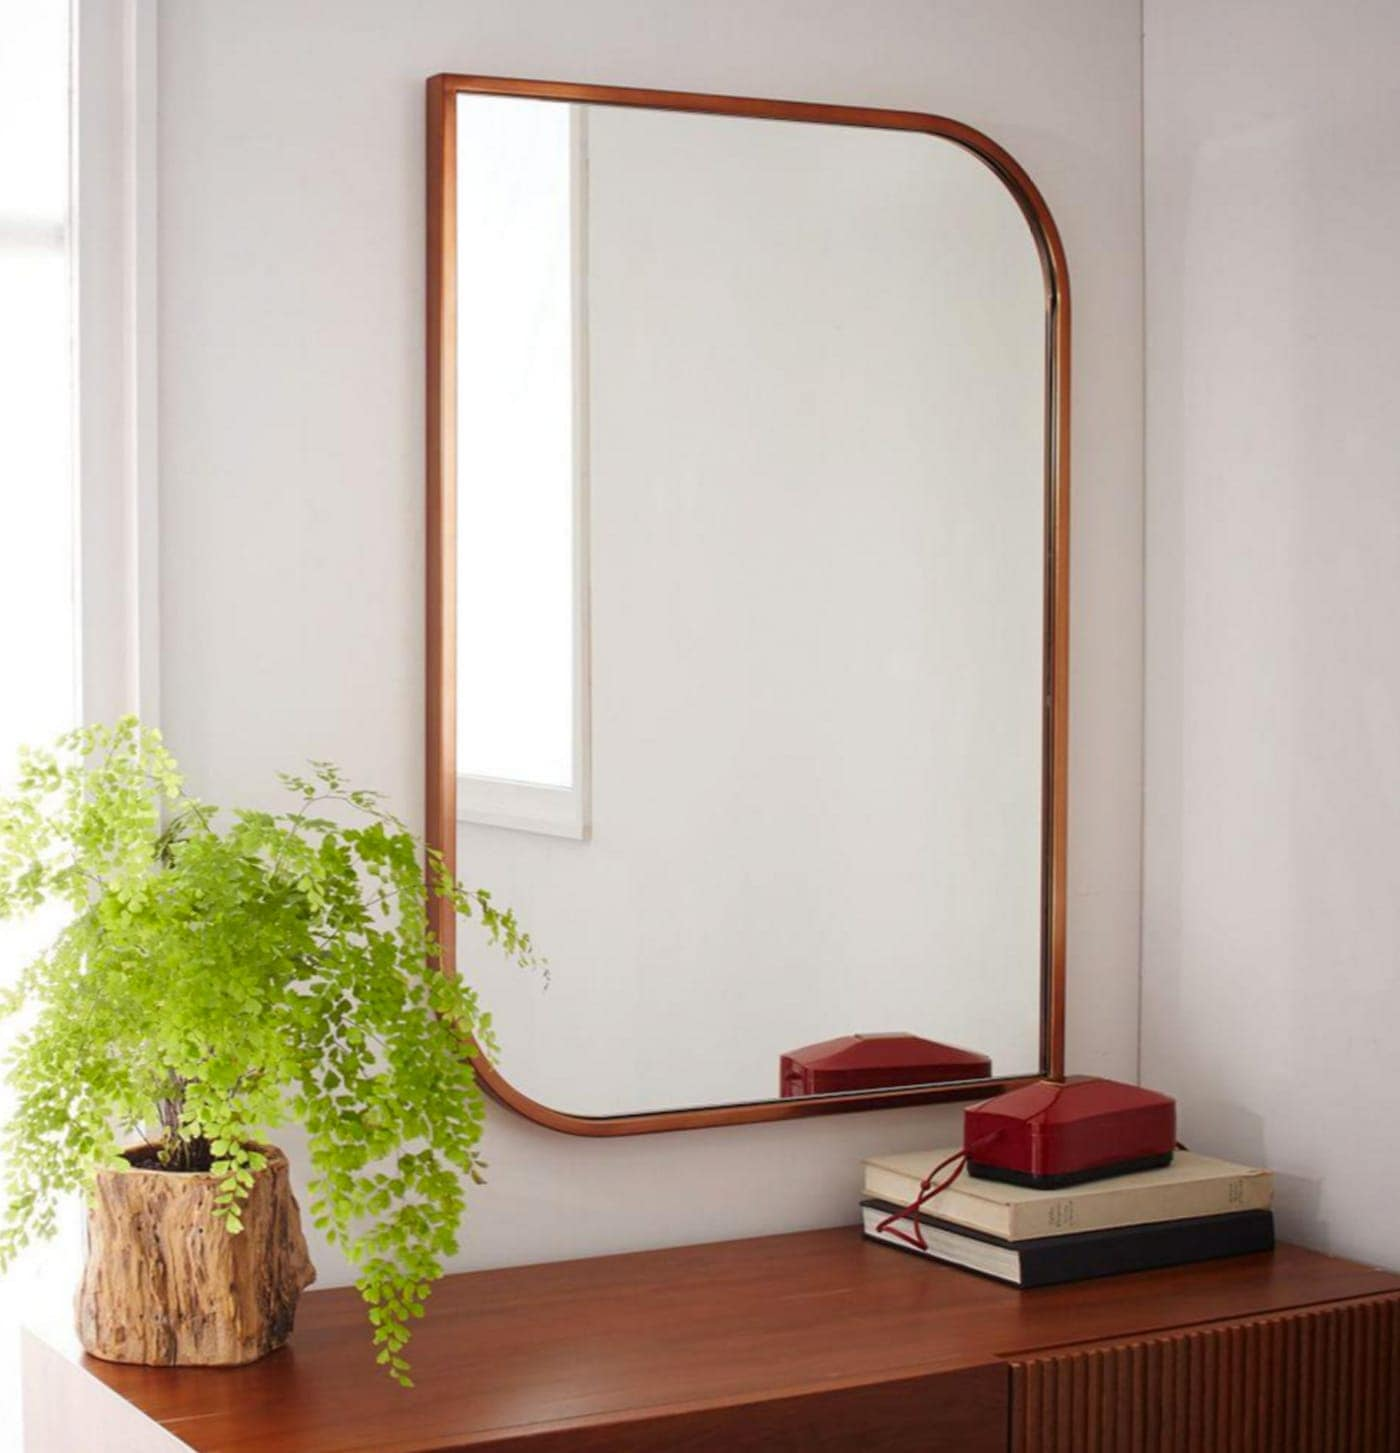 weat elm mirror shapes | interior inspiration